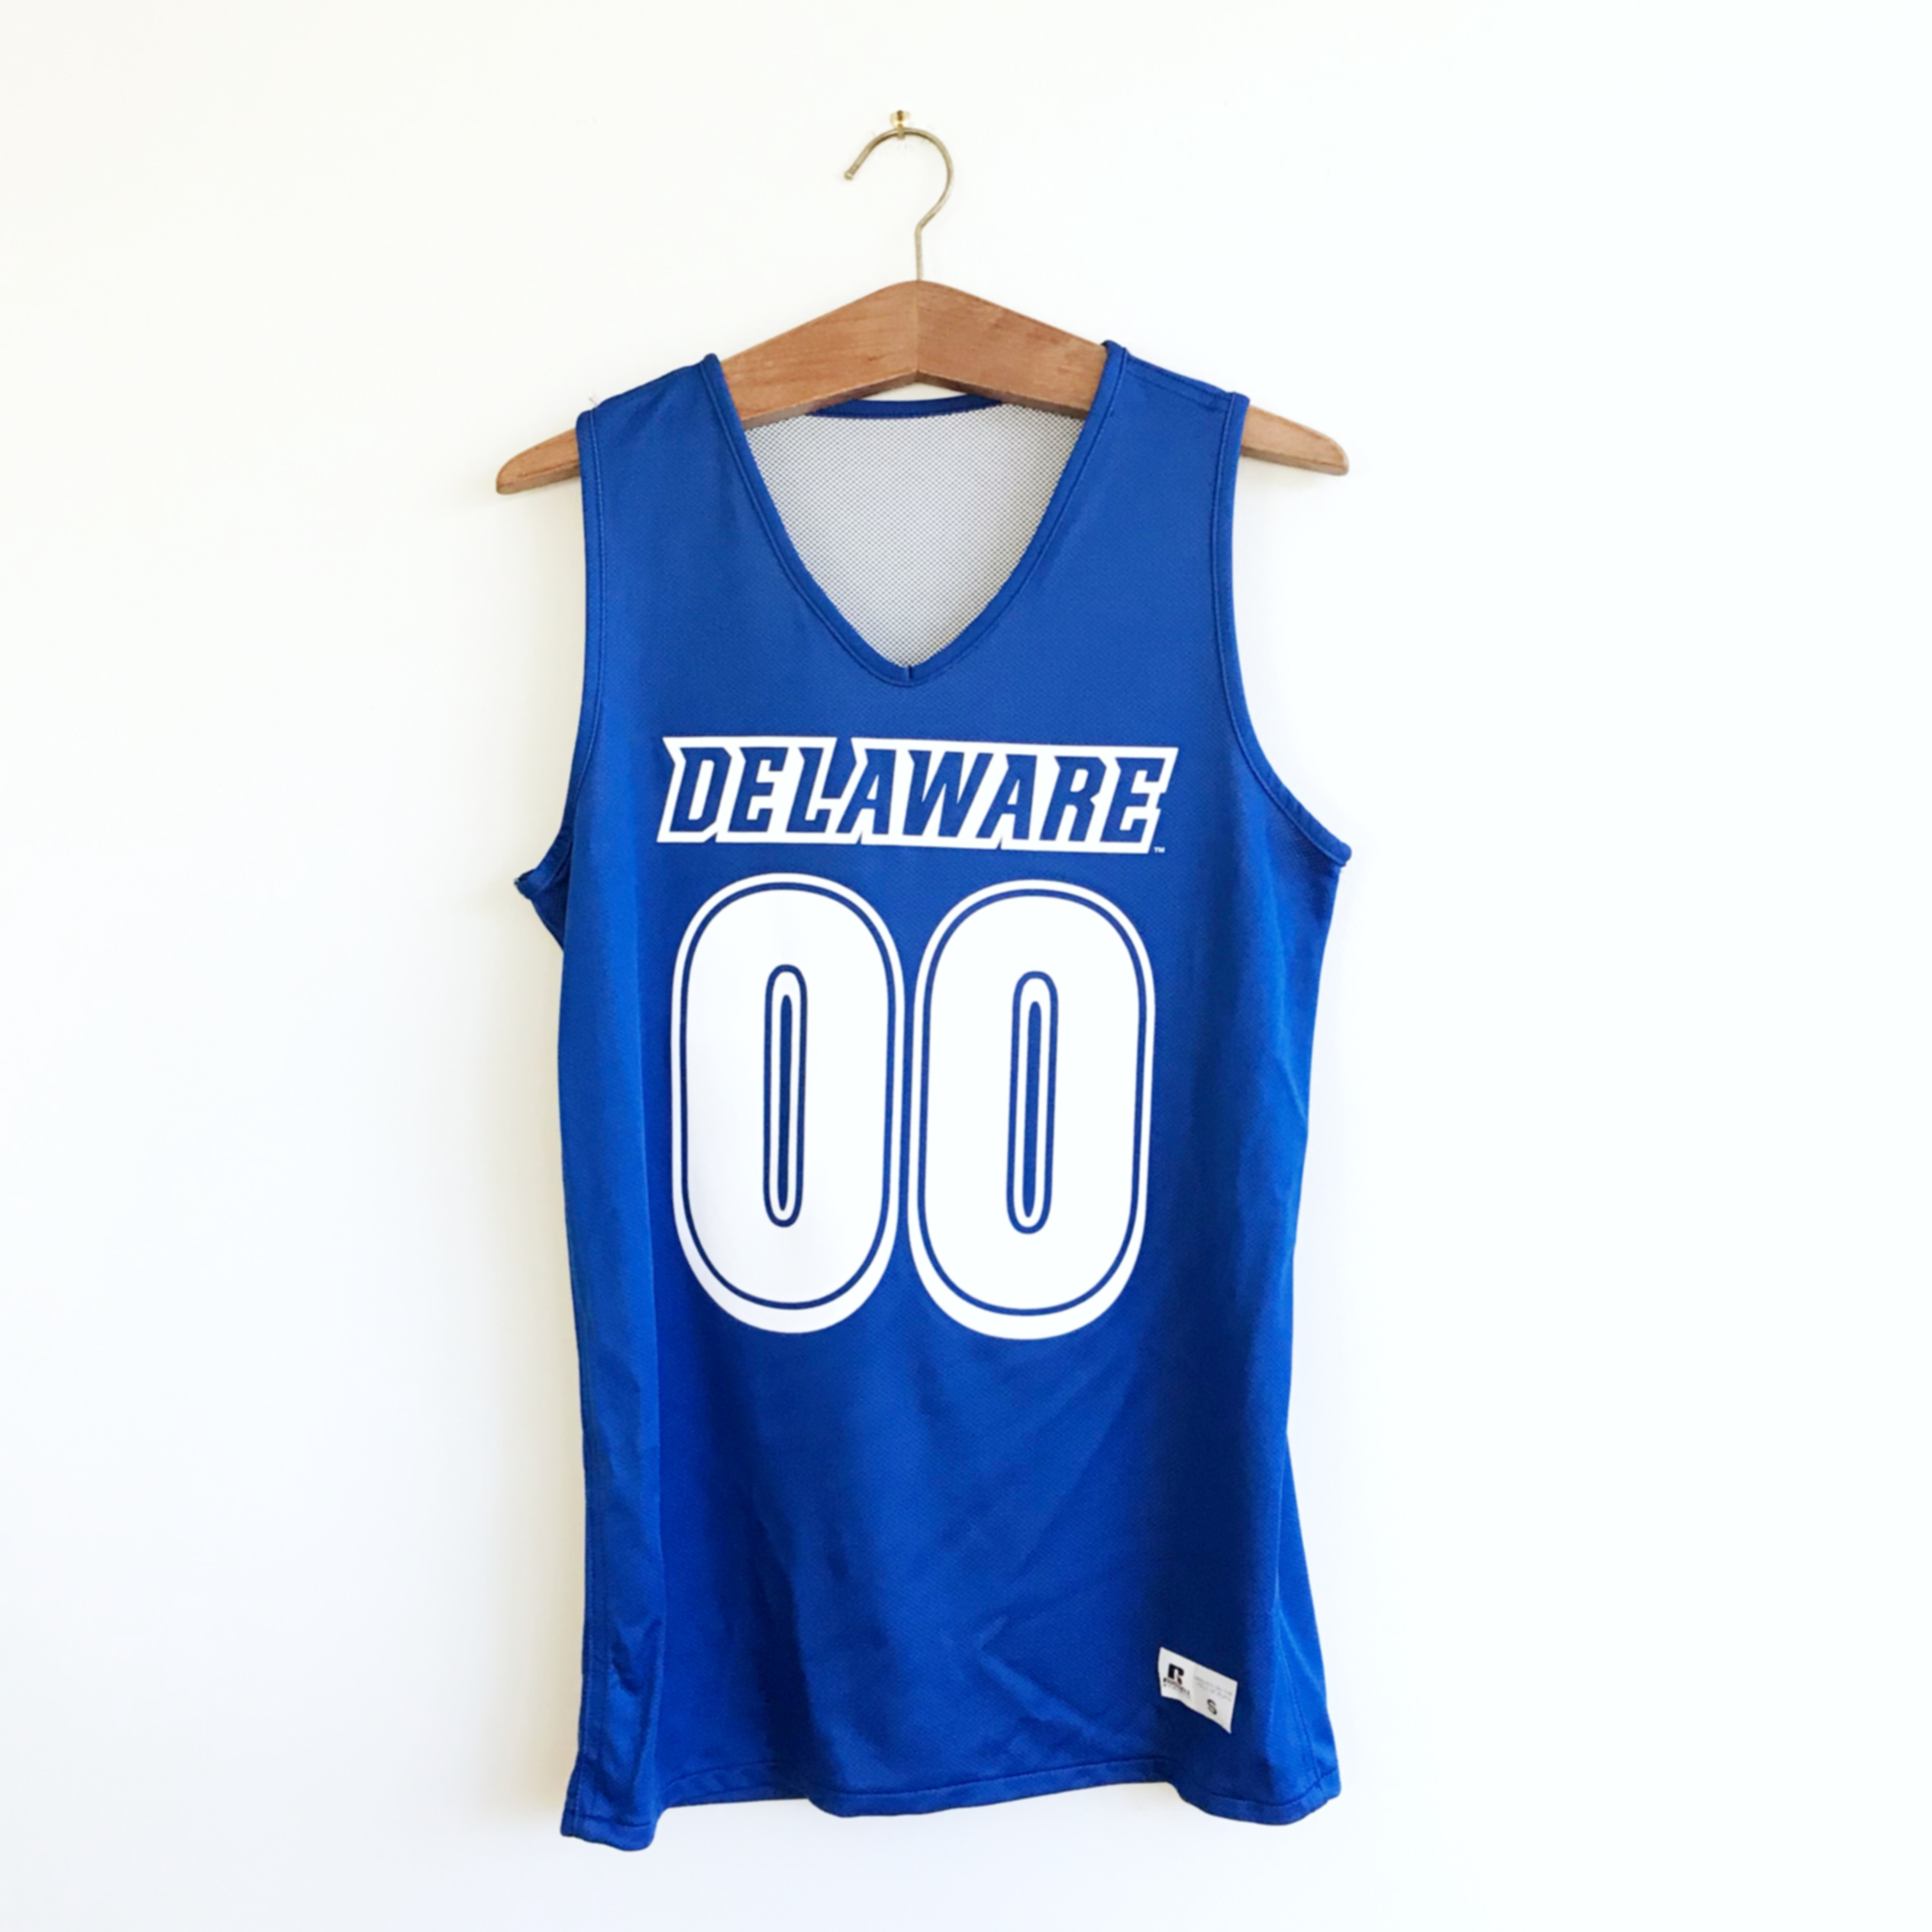 6c7030f87 University of Delaware Basketball Jersey – National 5 and 10